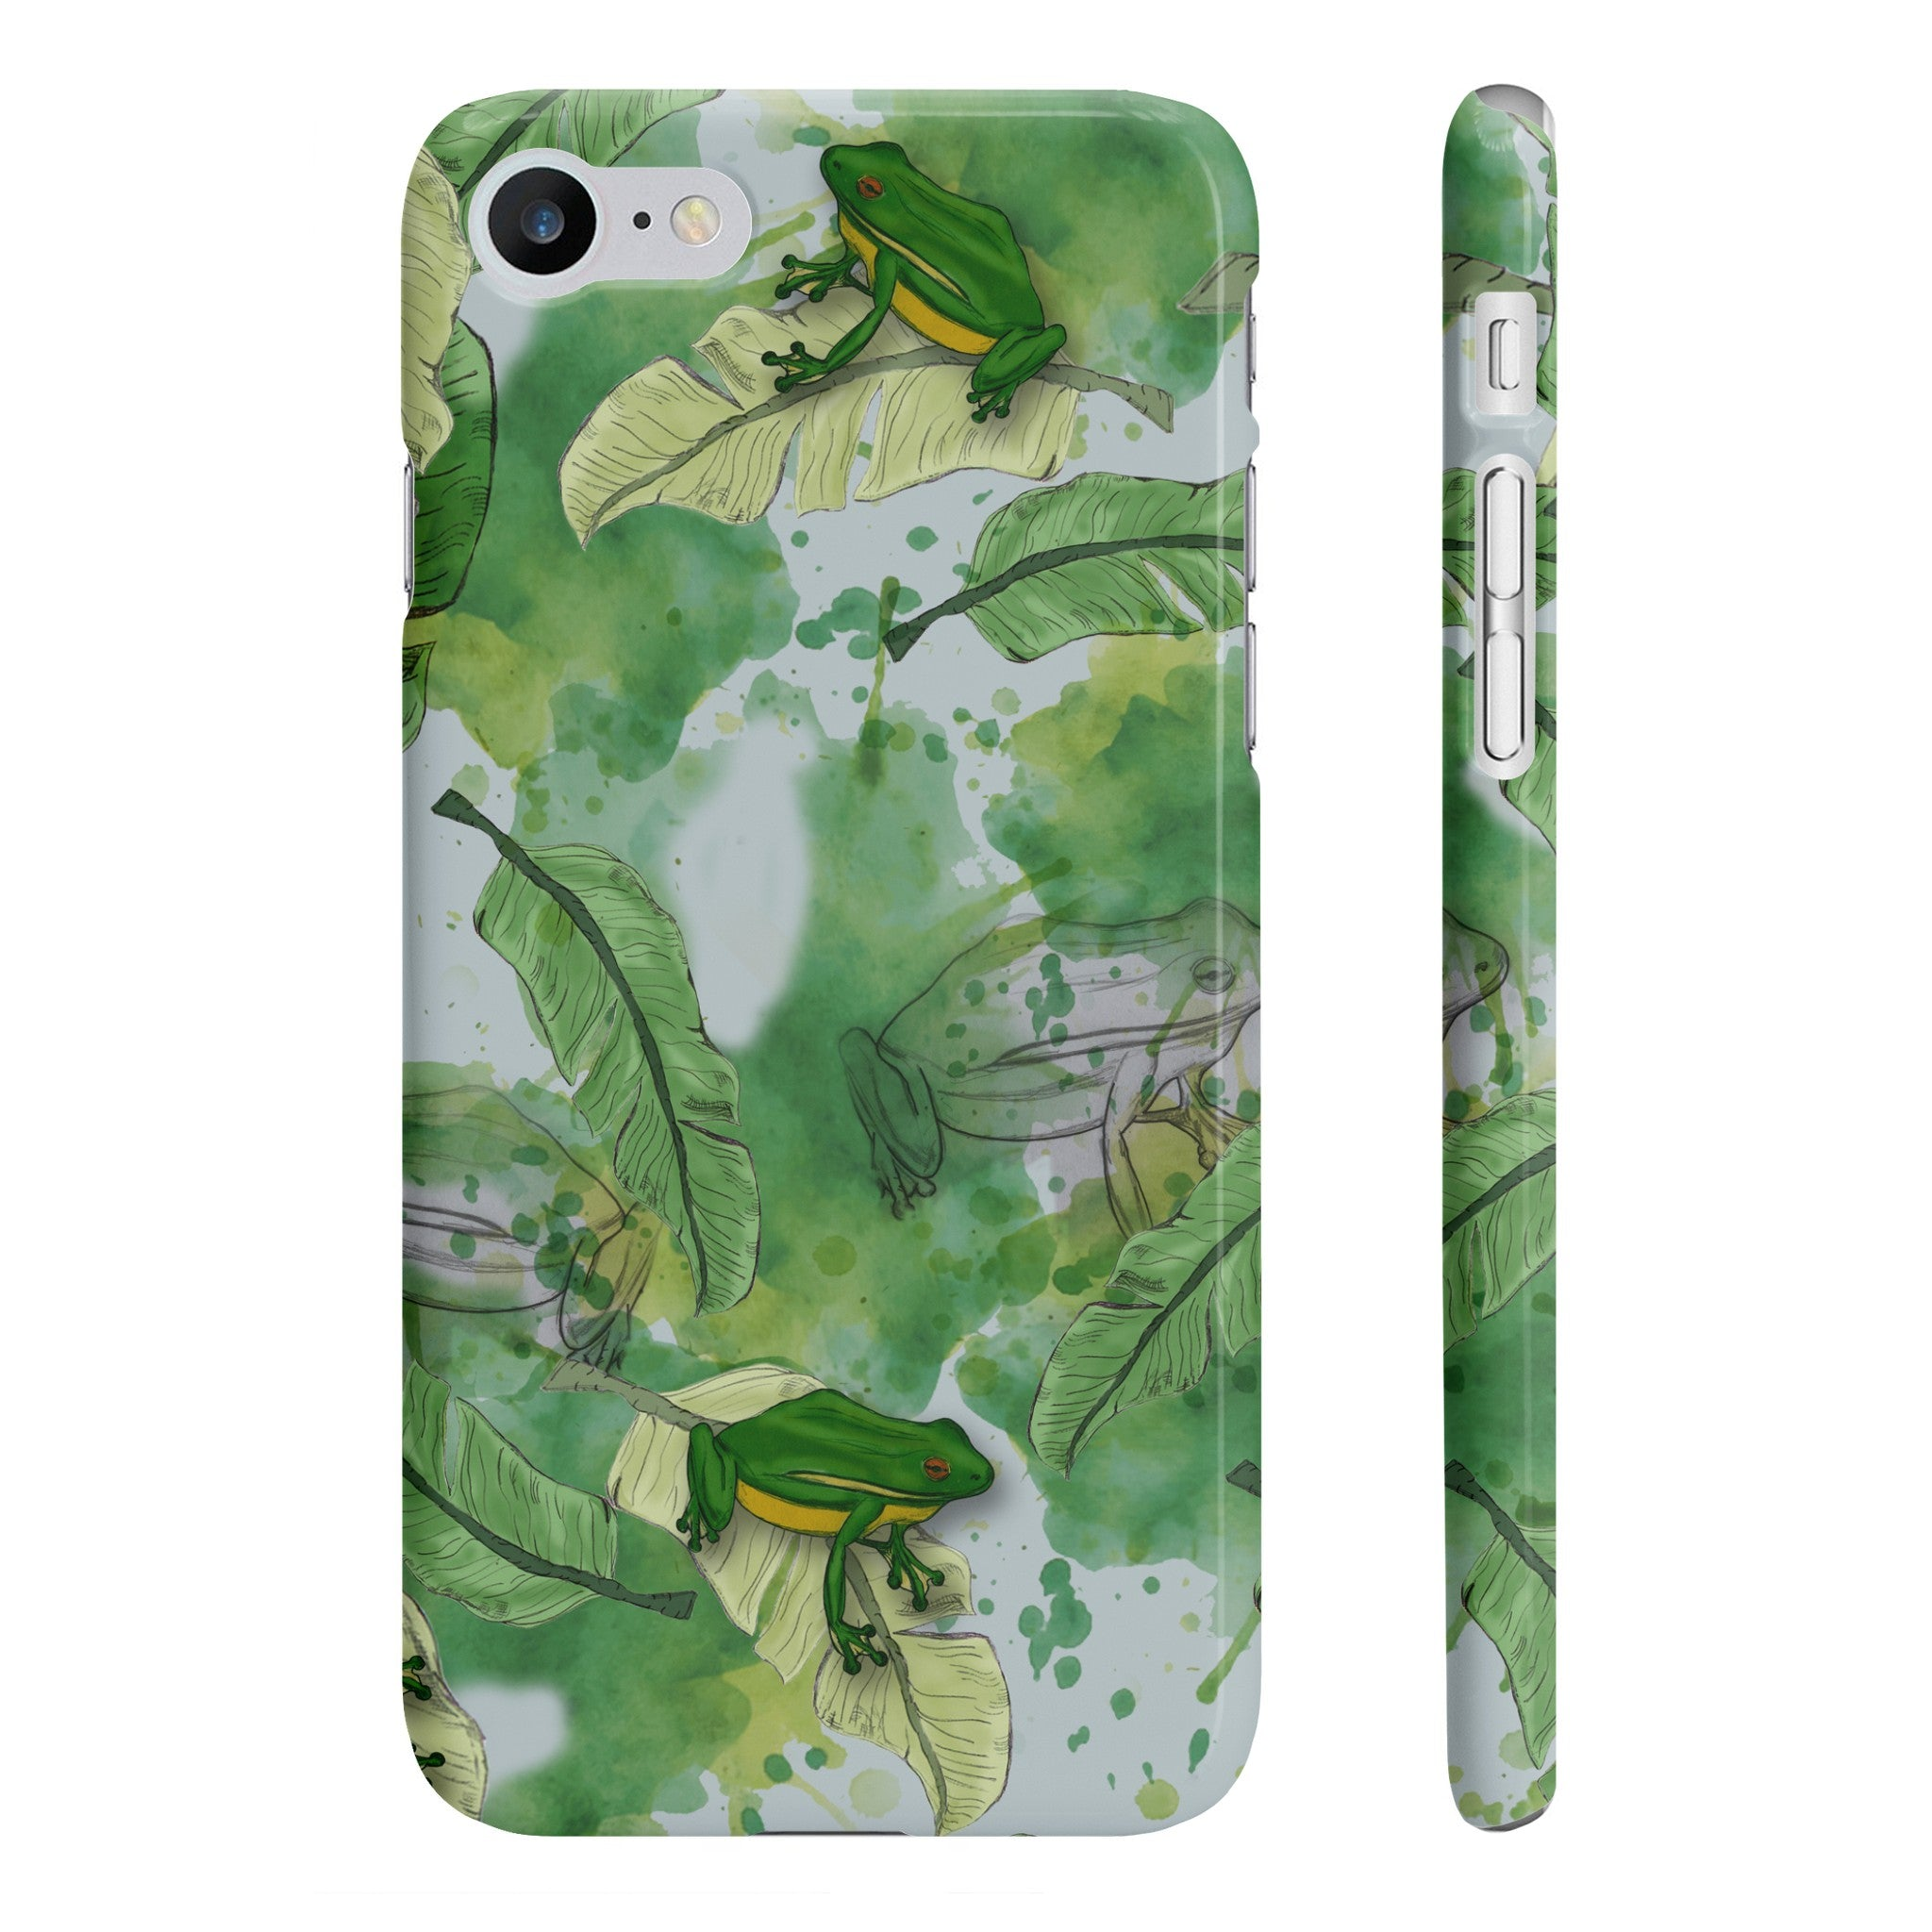 Rainforest iPhone 7 Case - sleekitstore